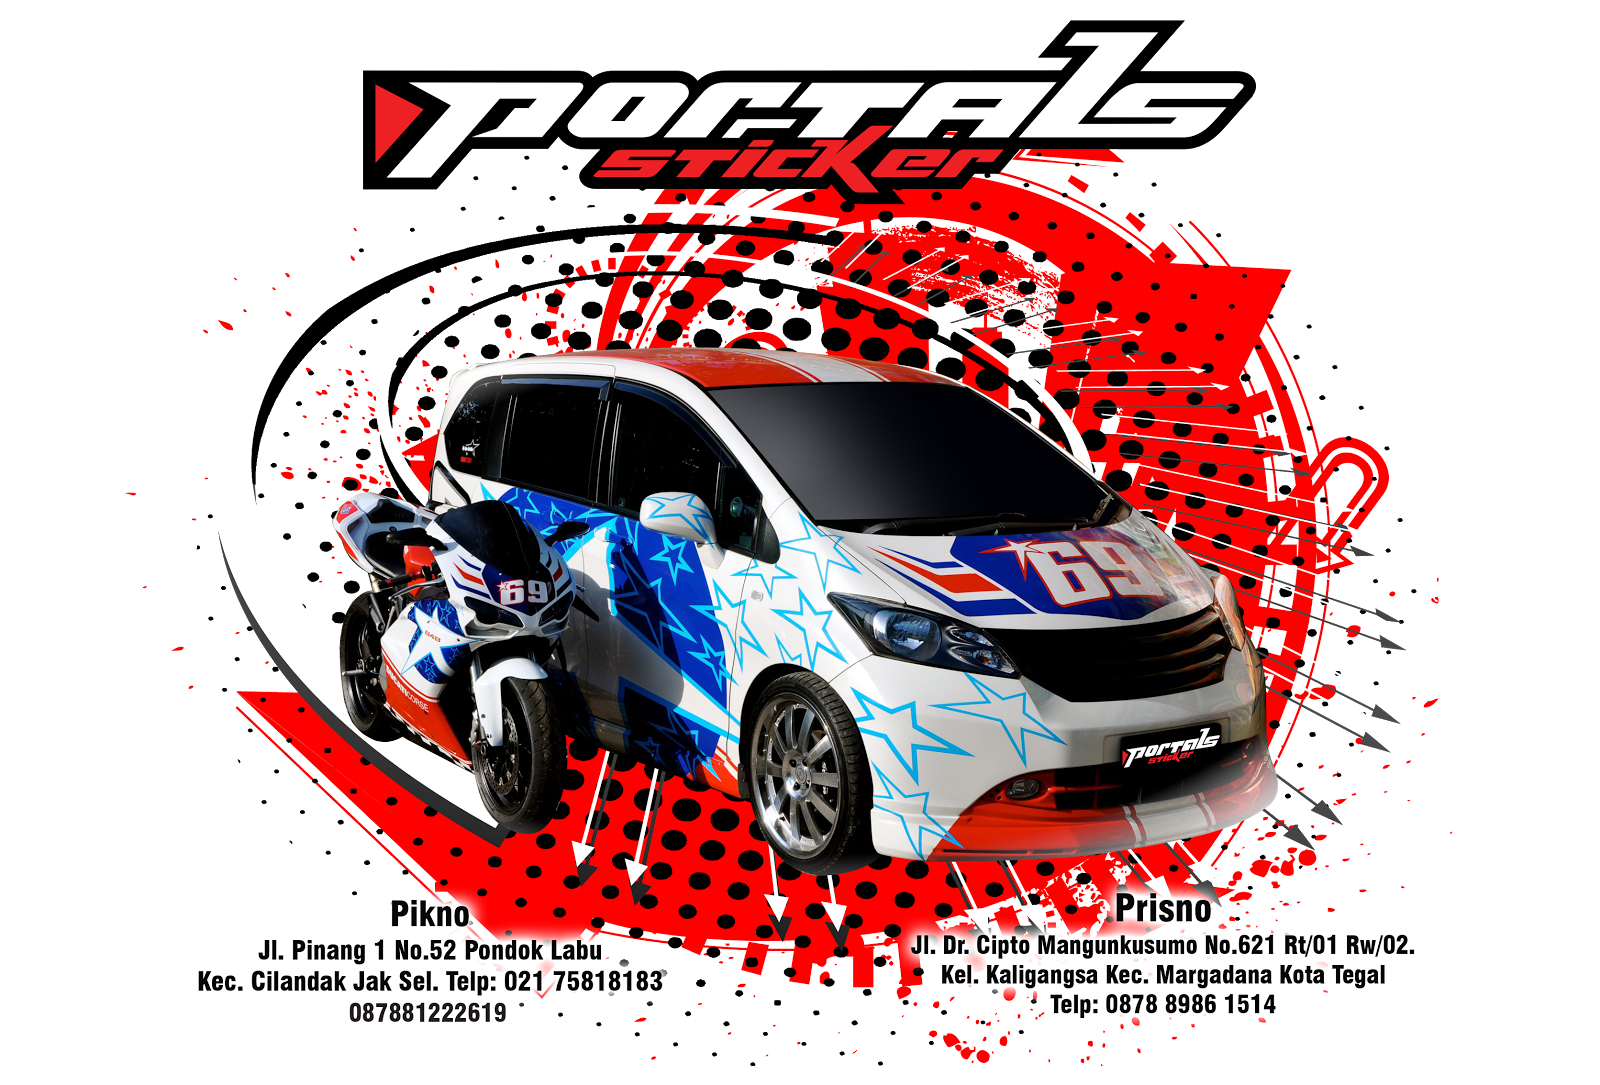 PORTALS STICKER